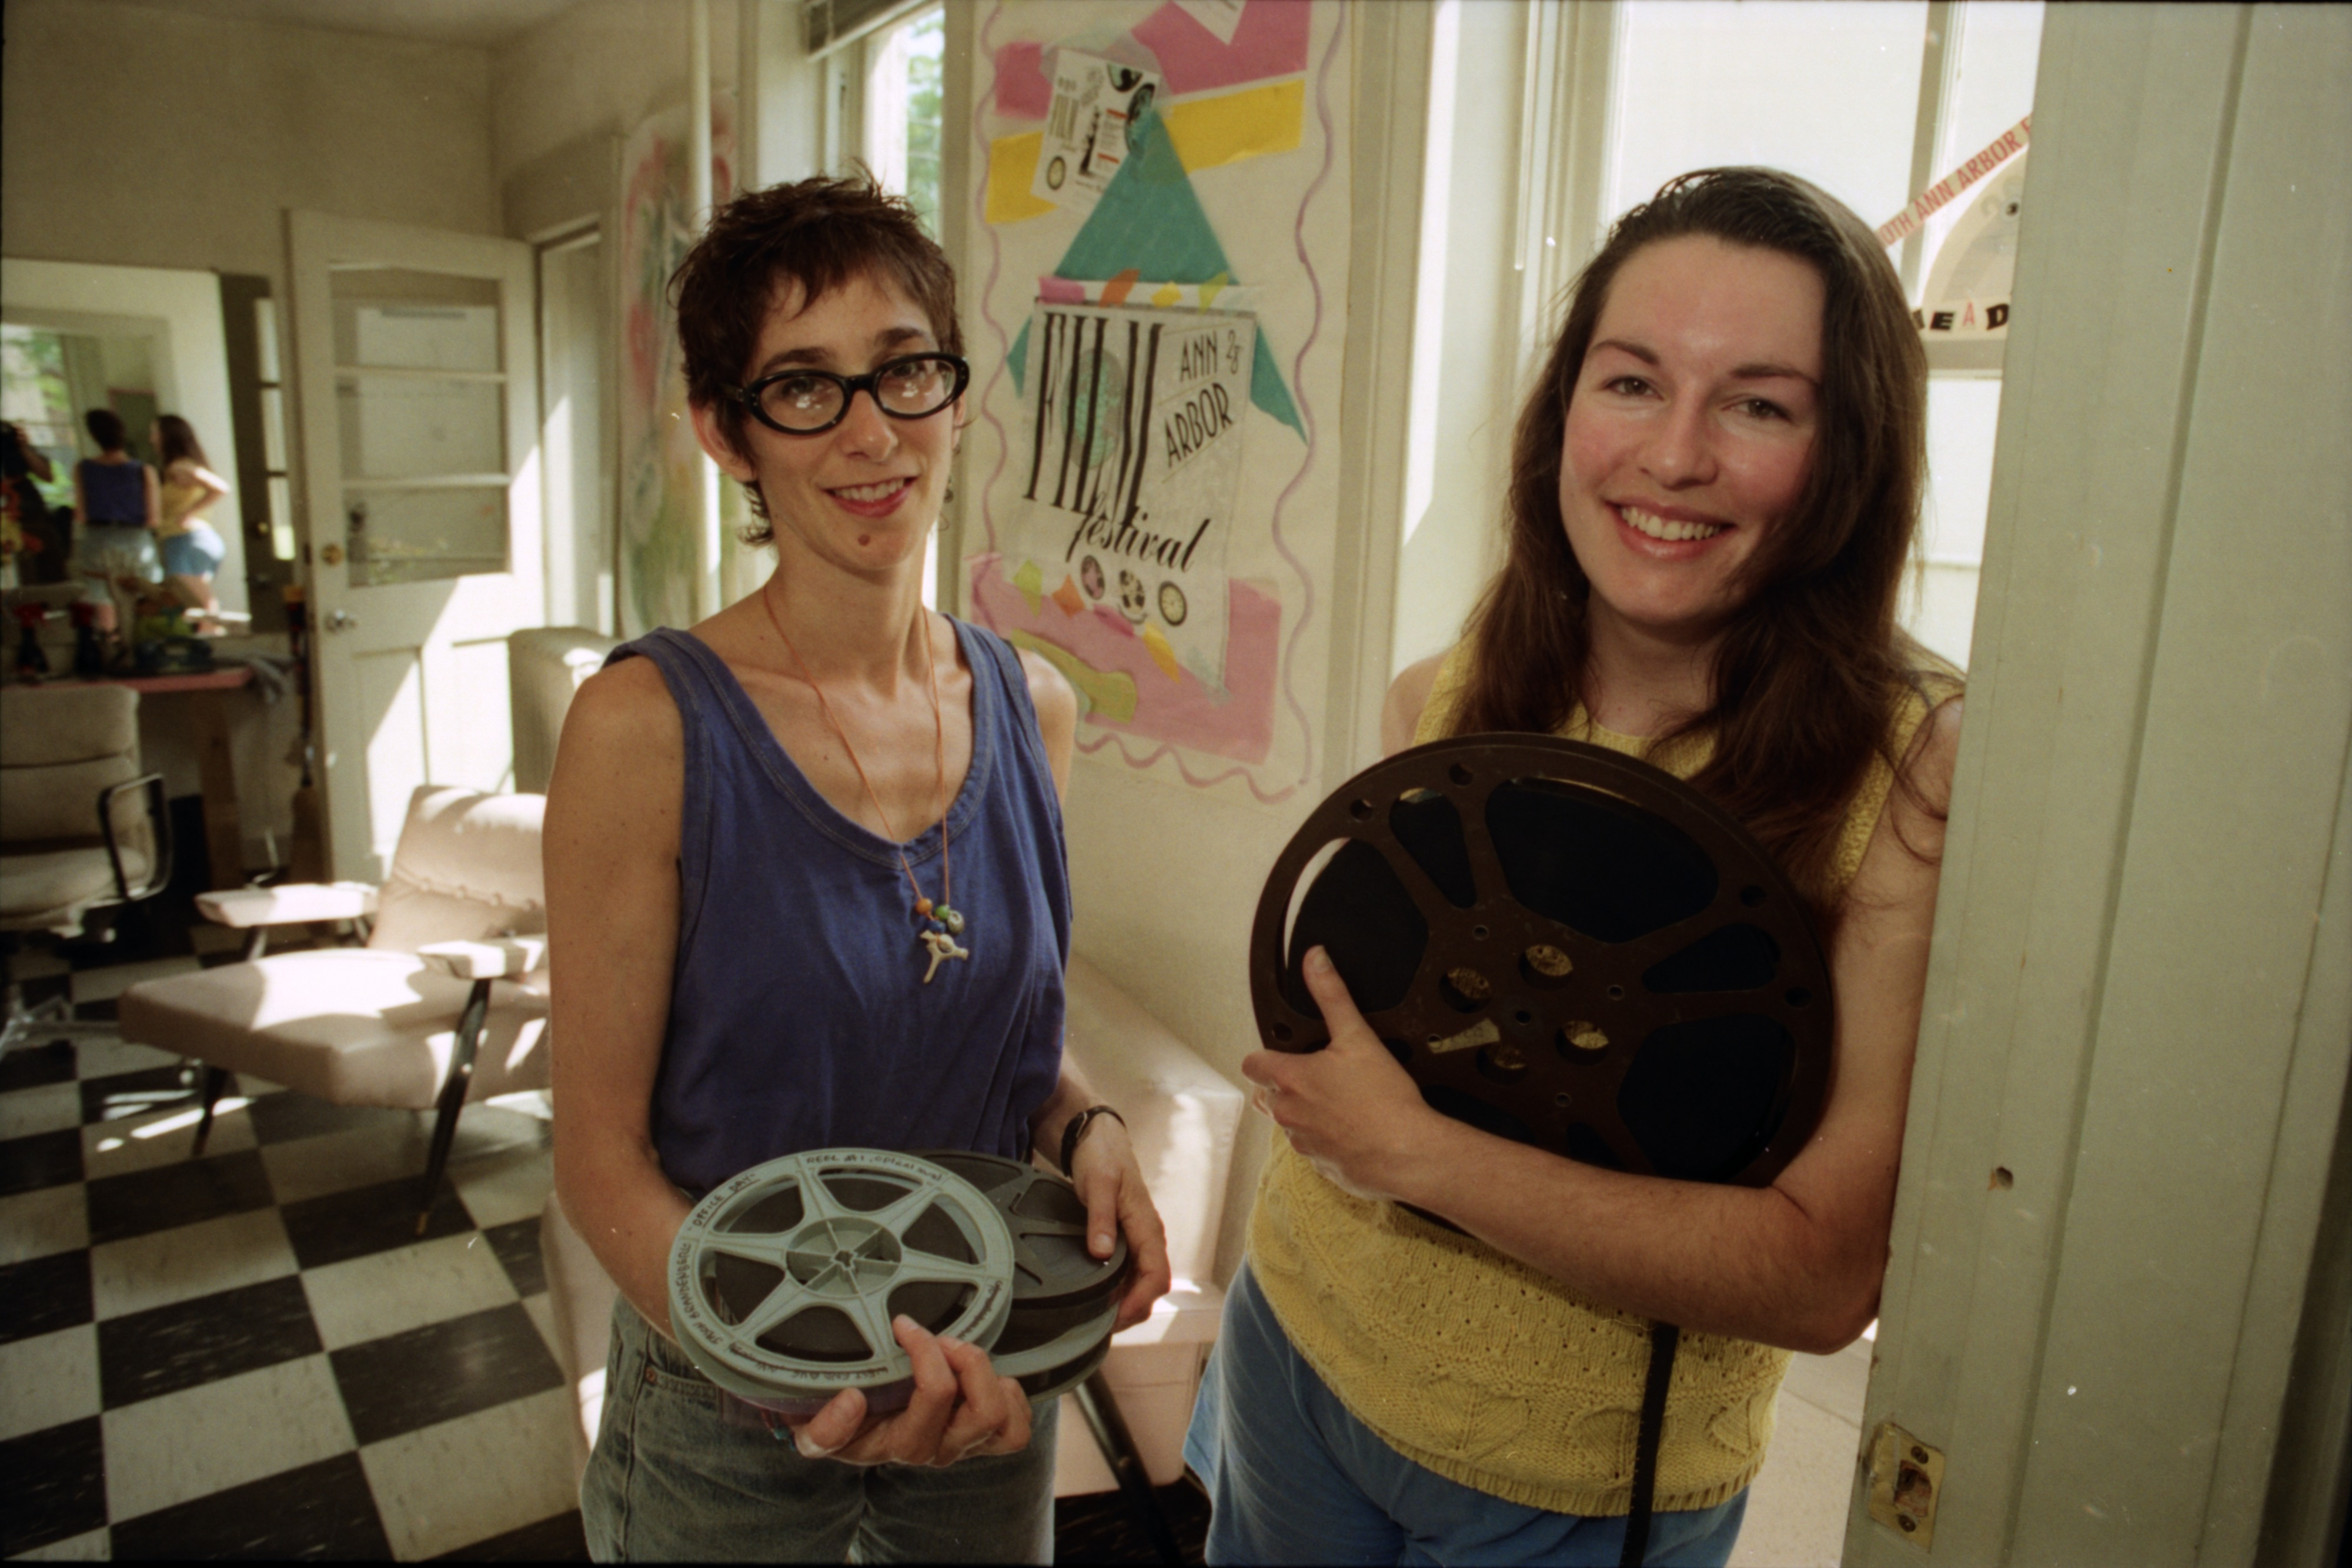 Vicki Honeyman and Elizabeth Cox, Directors of the Ann Arbor Film Festival, July 1992 image